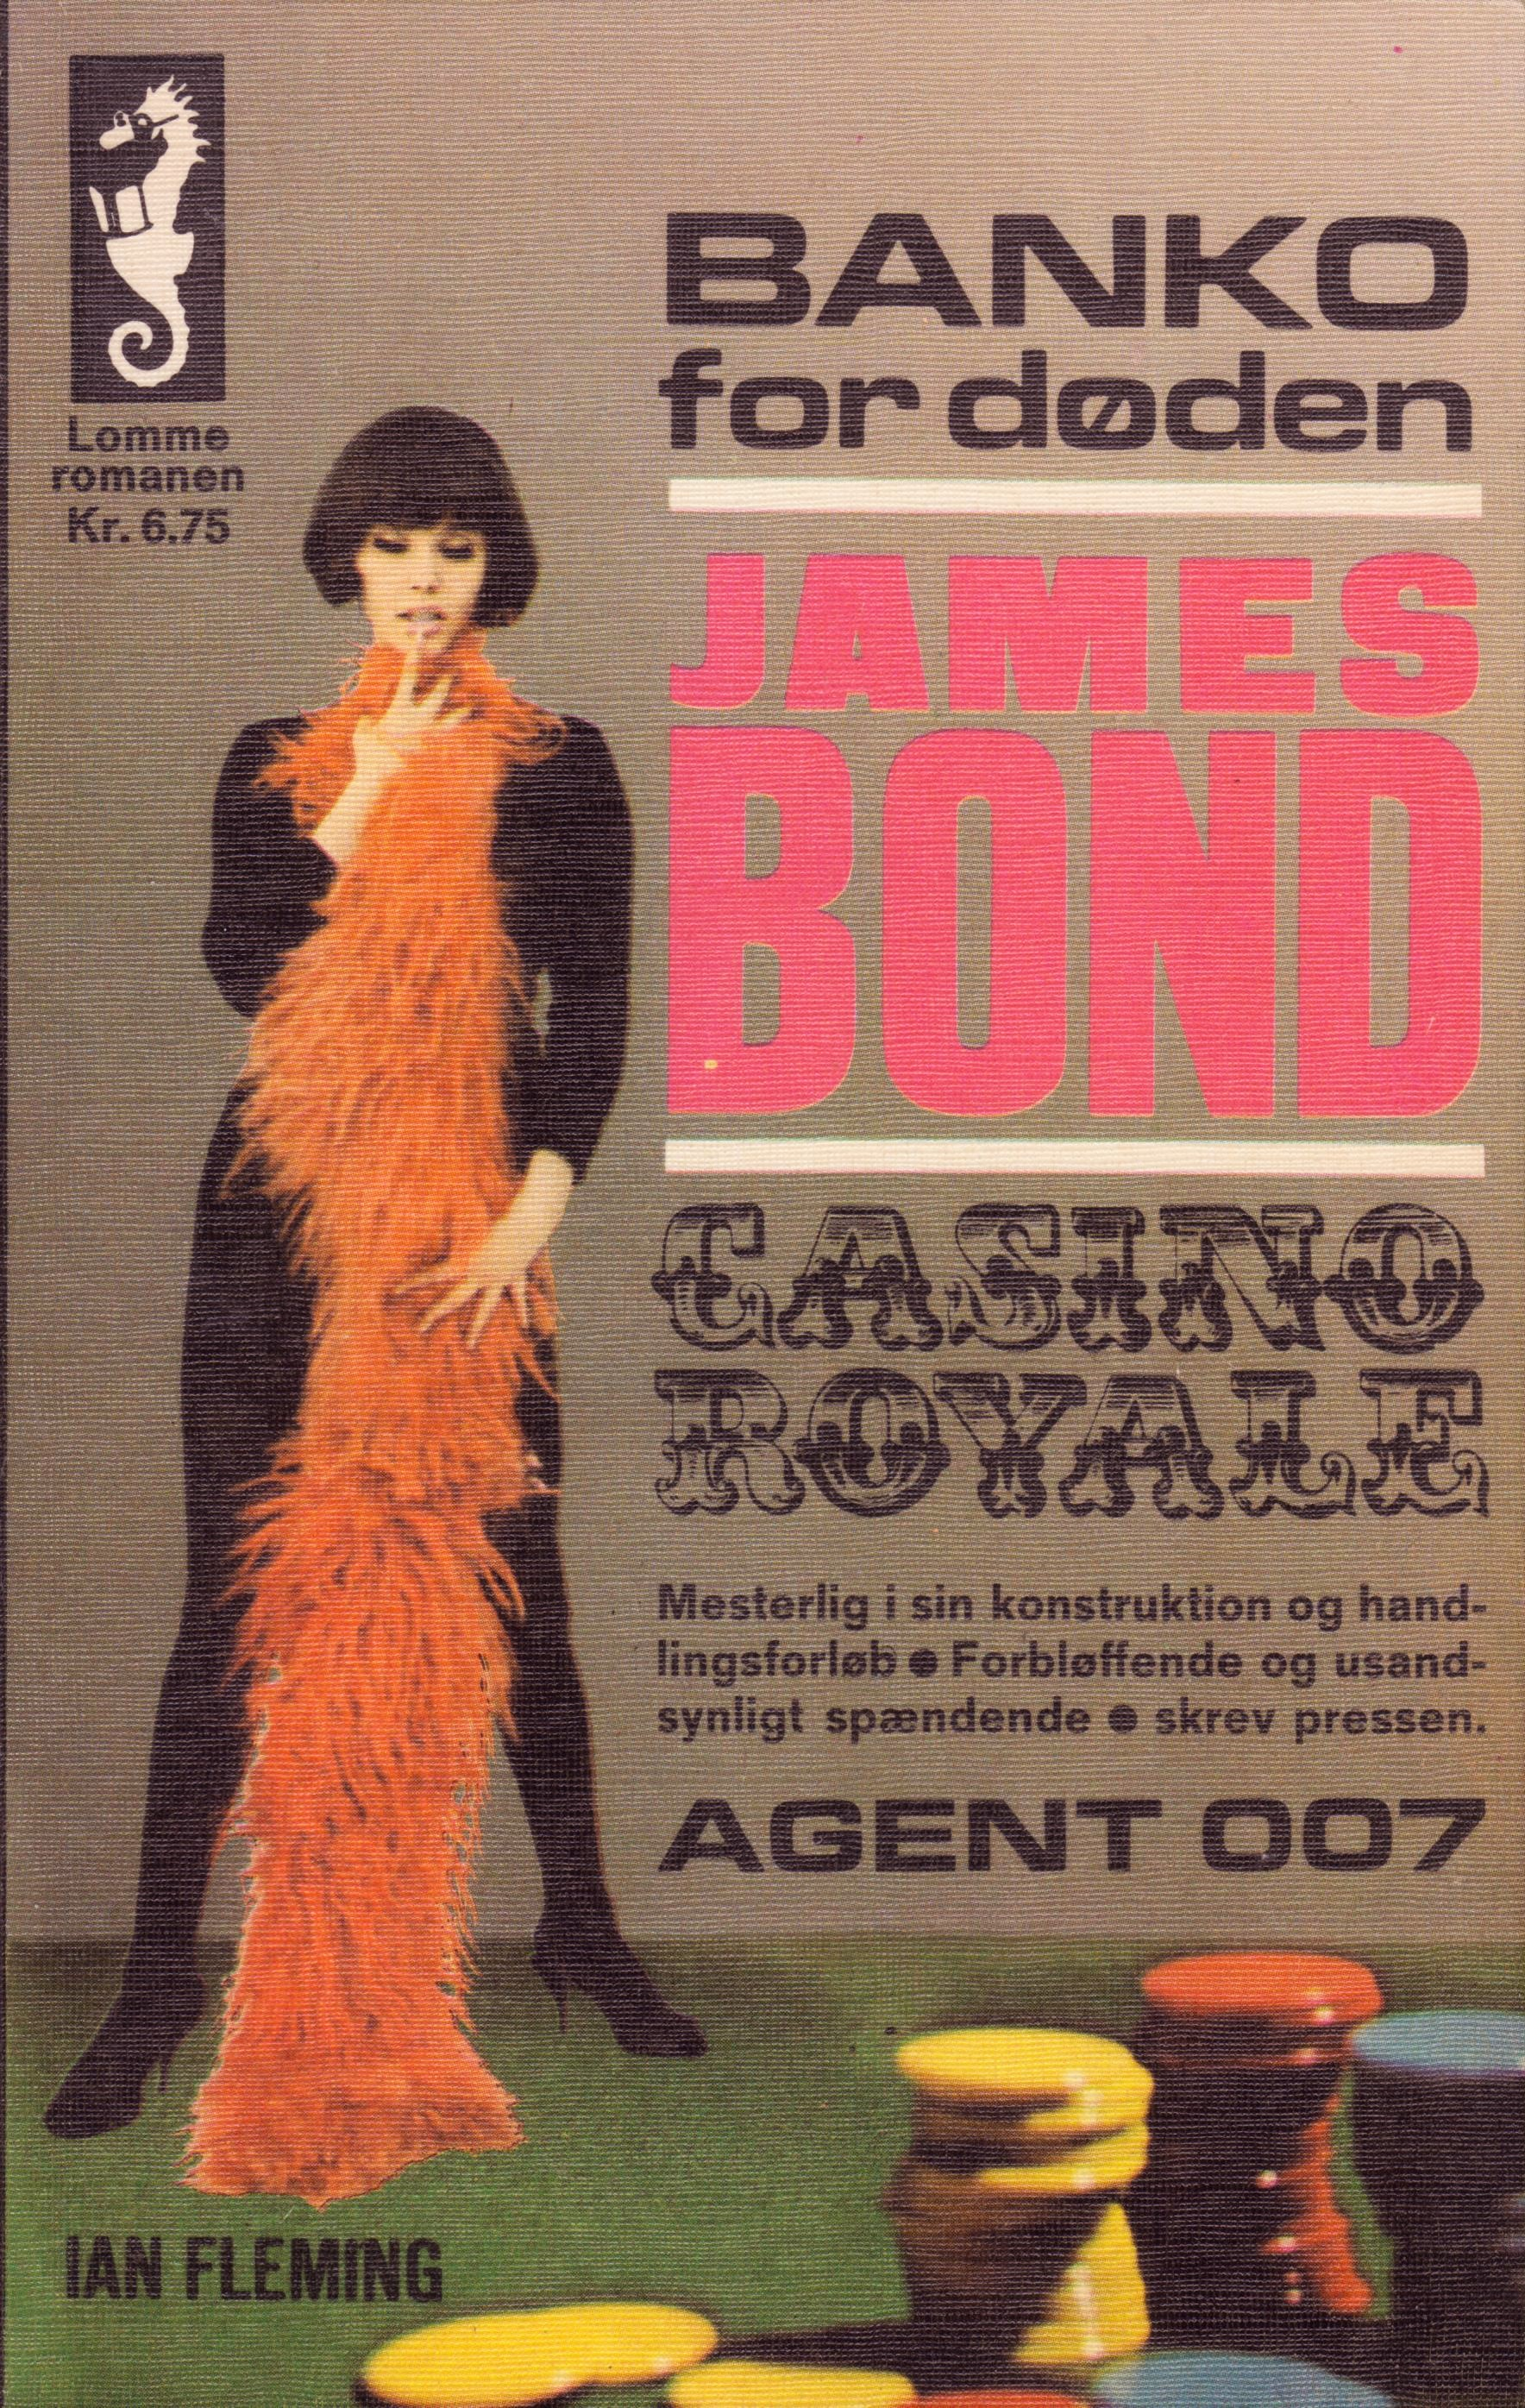 Banko for døden James Bond (Skrifola 1967) forside